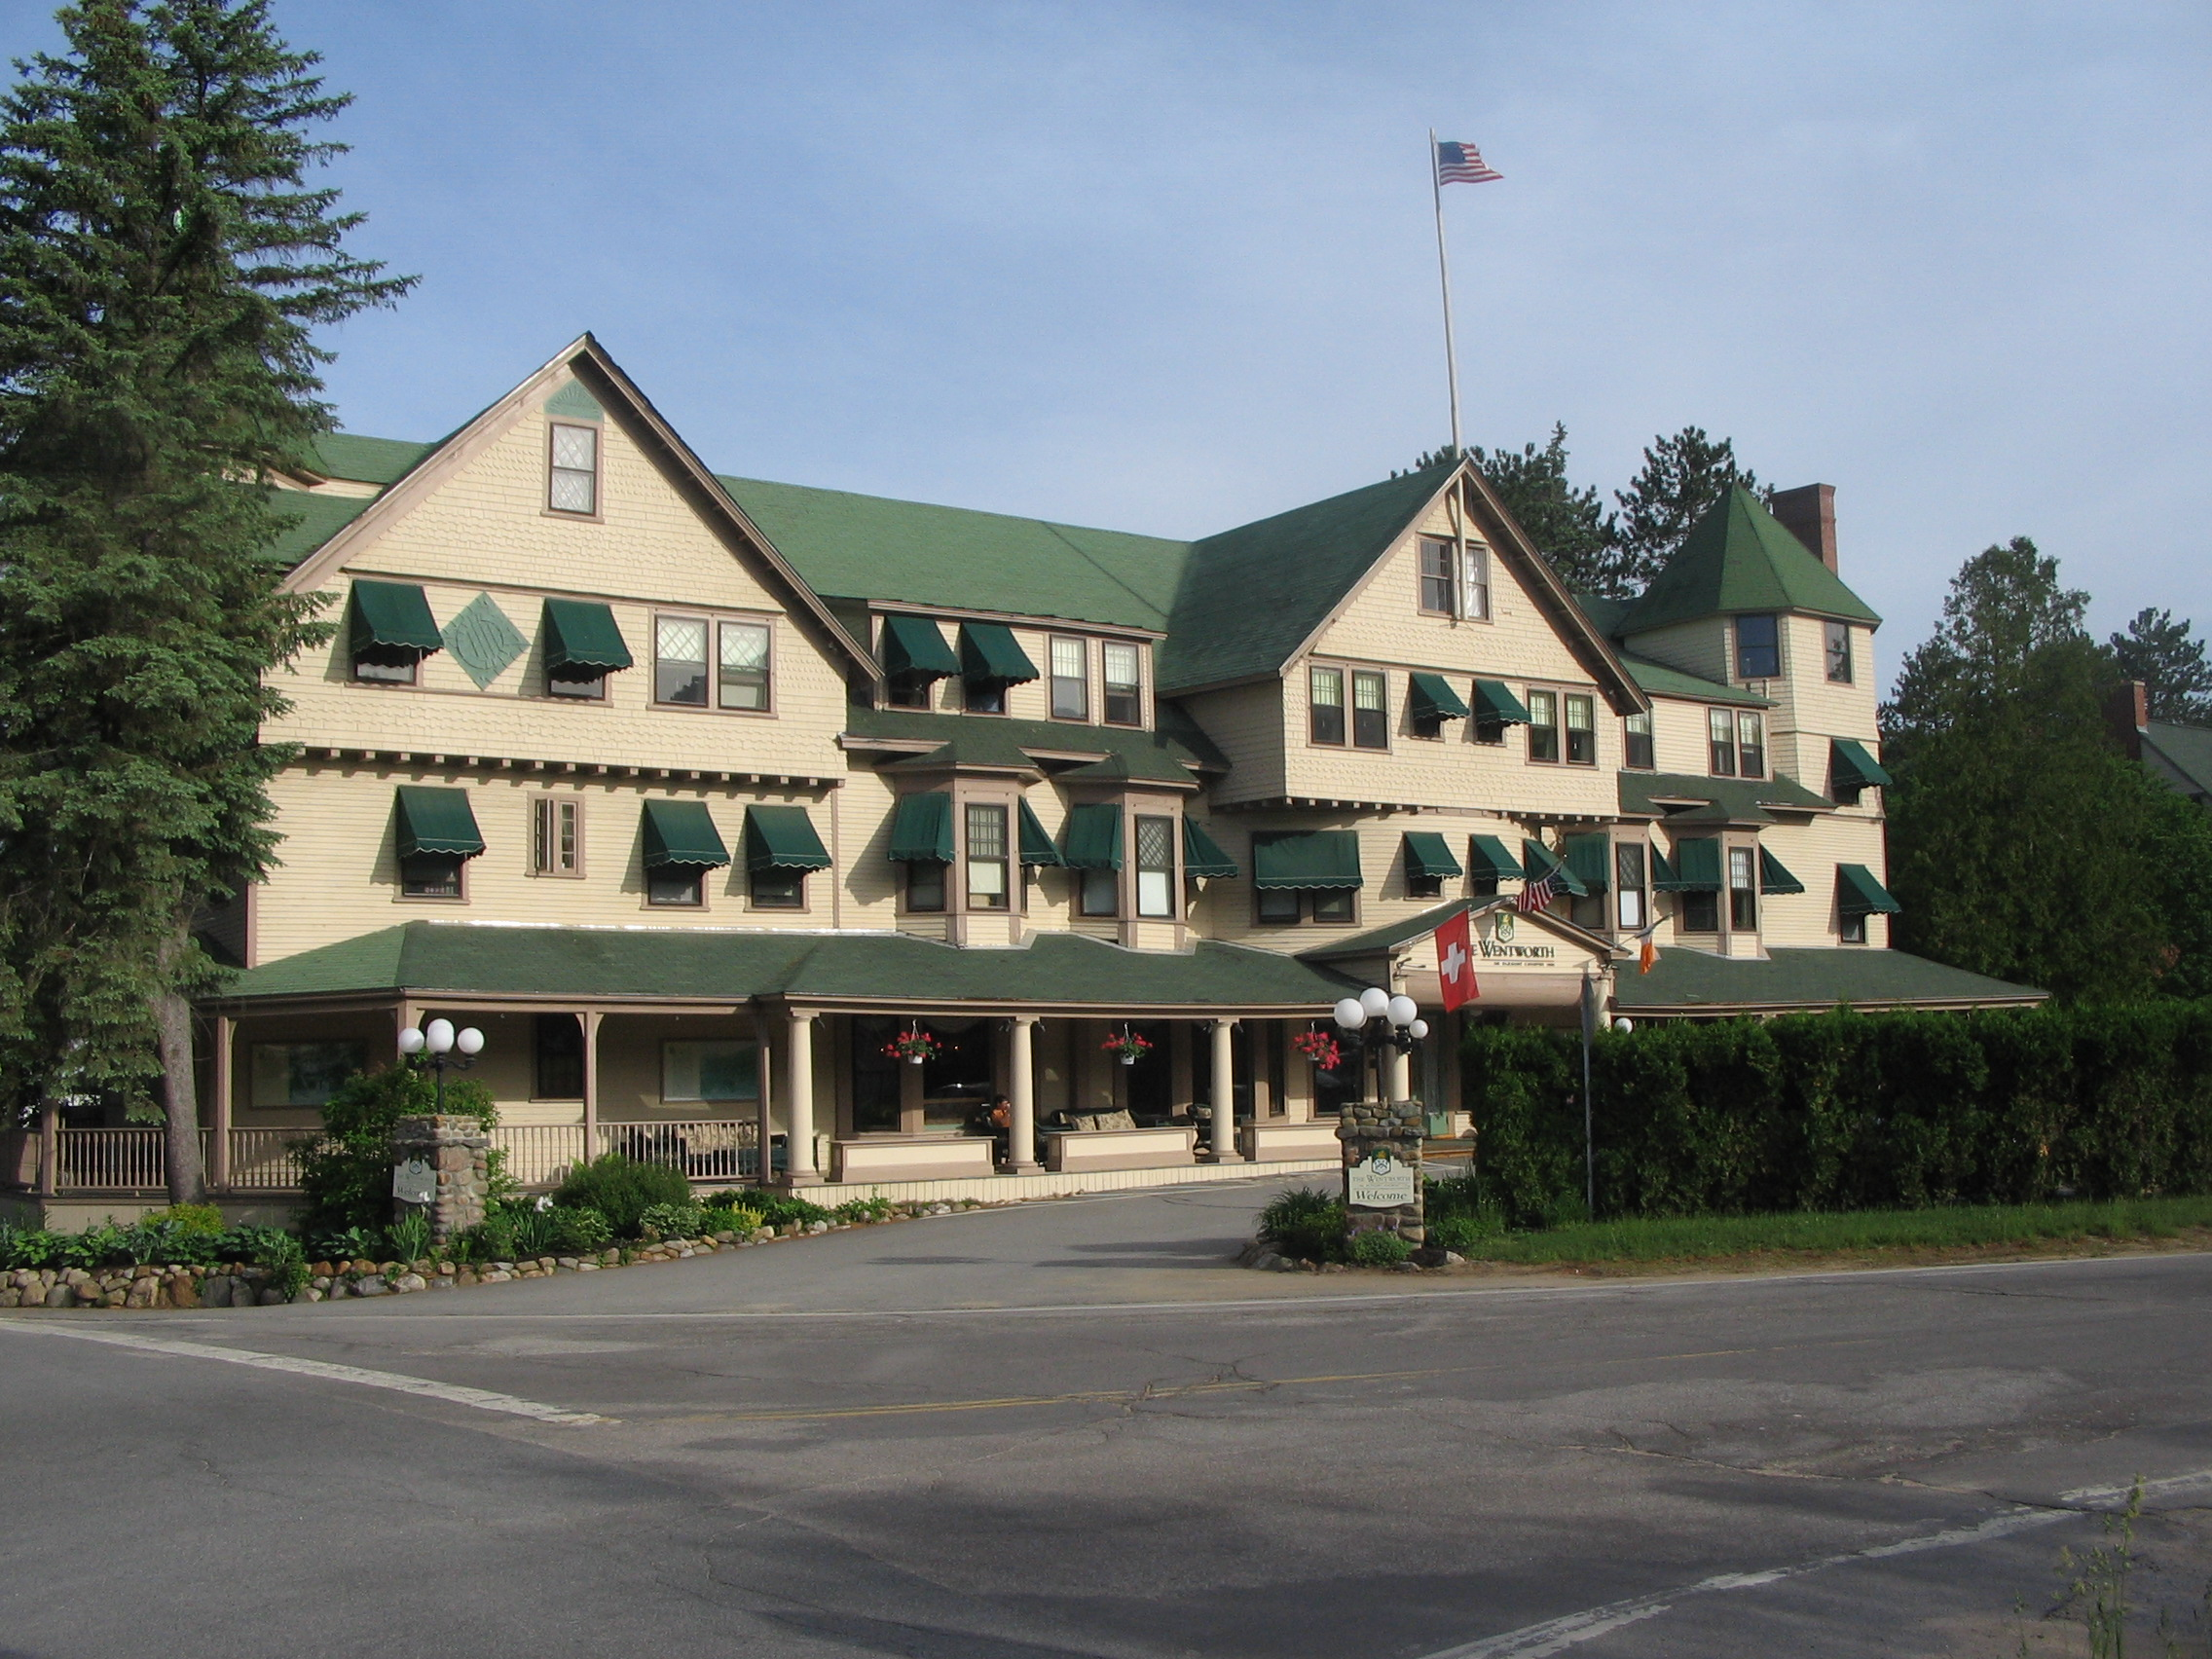 Historic Inns And Hotels Of New England With A Focus On Nh